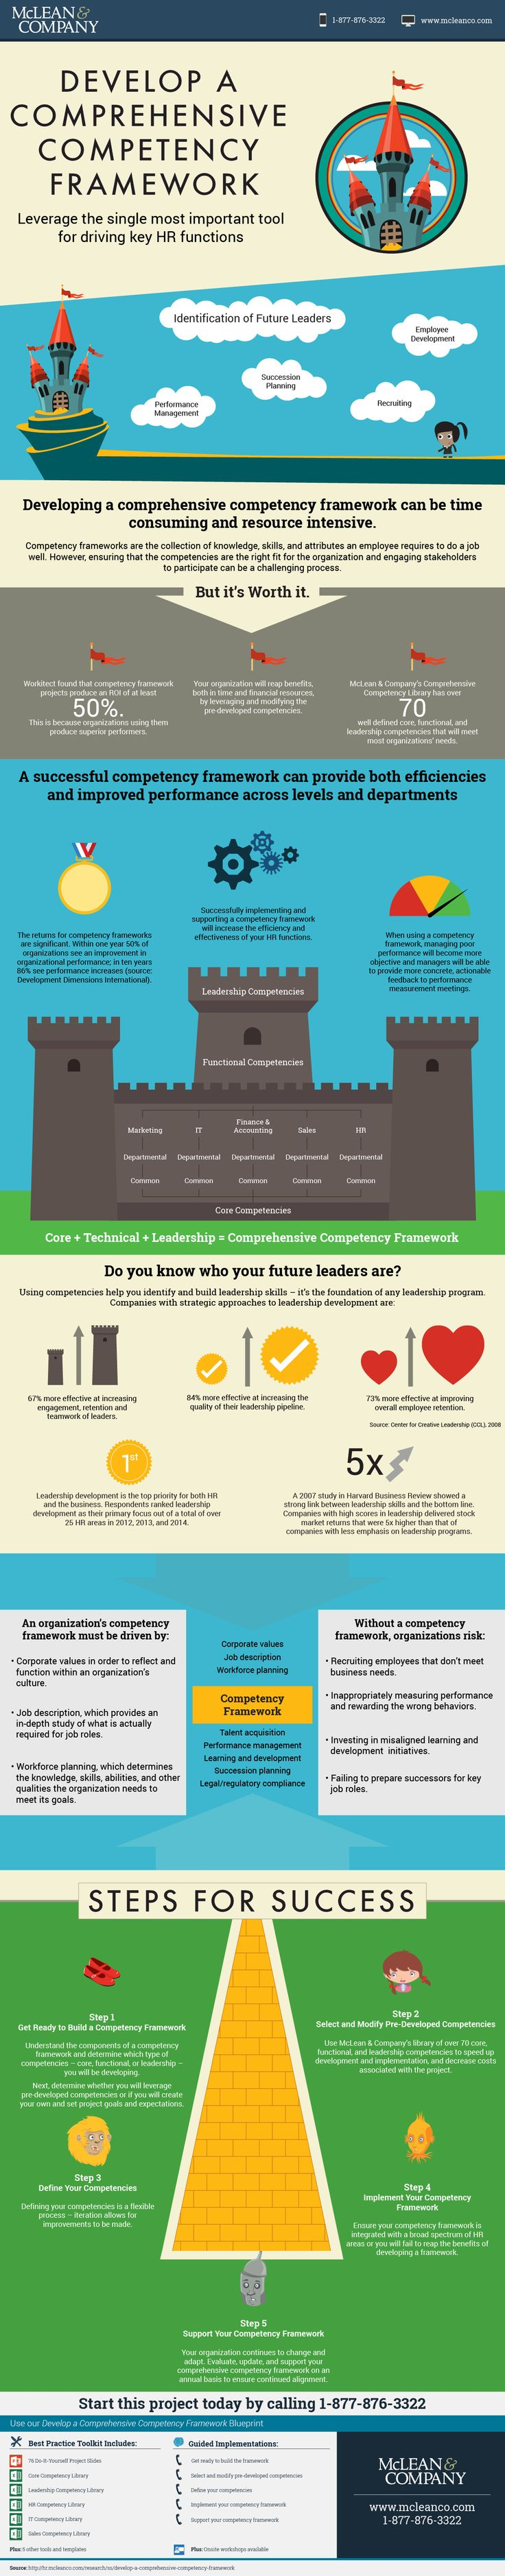 27 best competency images on pinterest leadership learning and